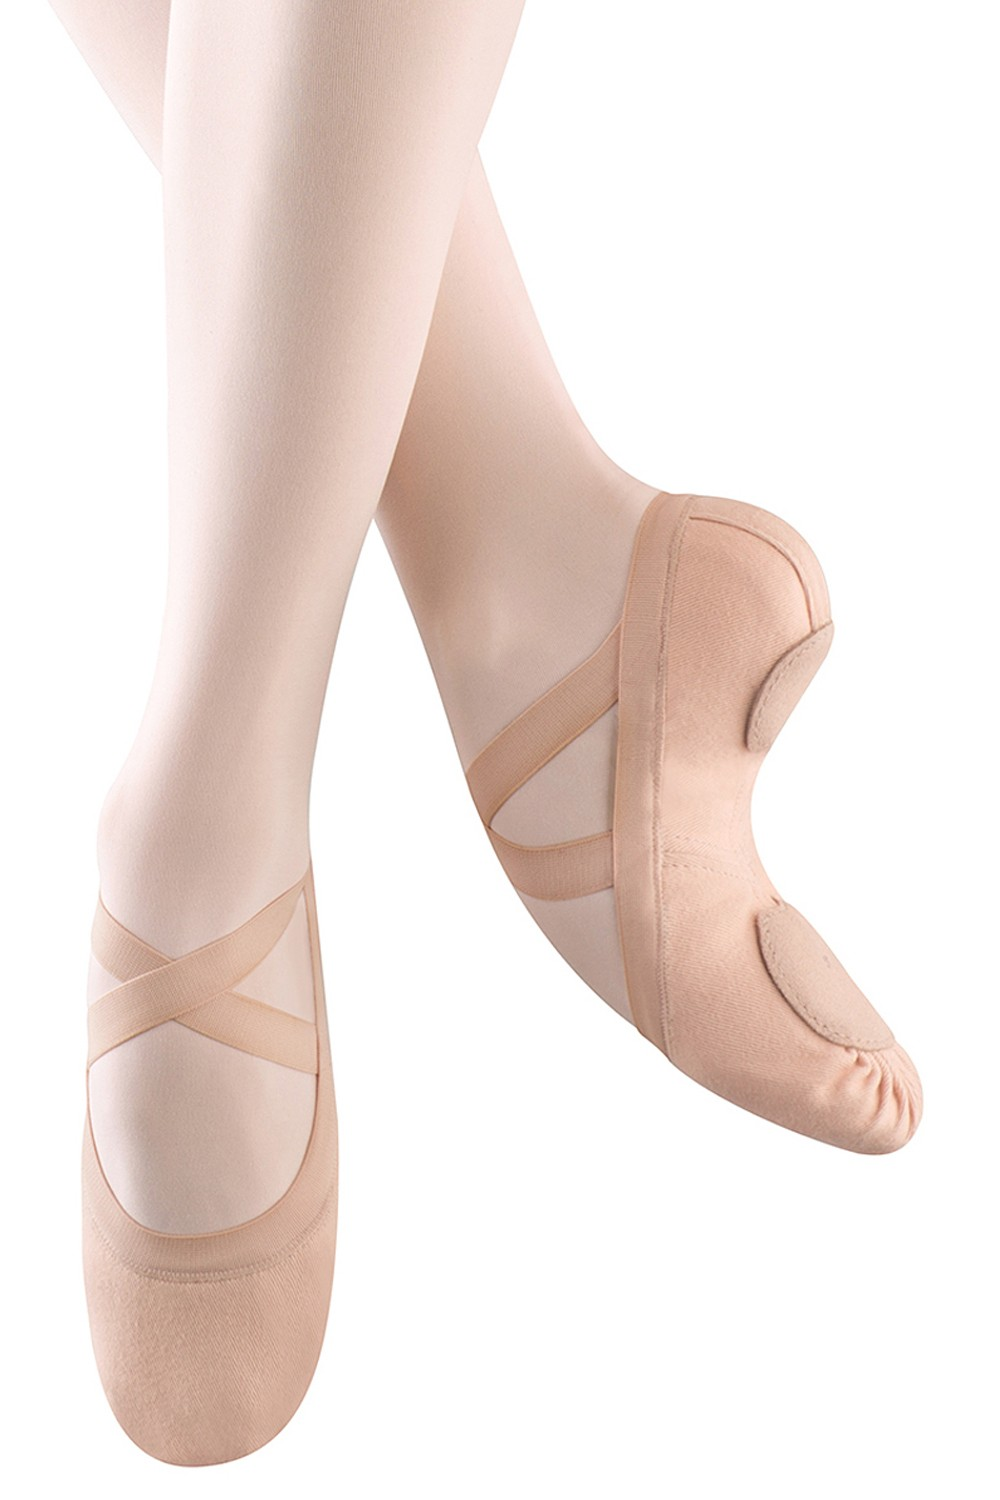 Synchrony - Girls Girl's Ballet Shoes